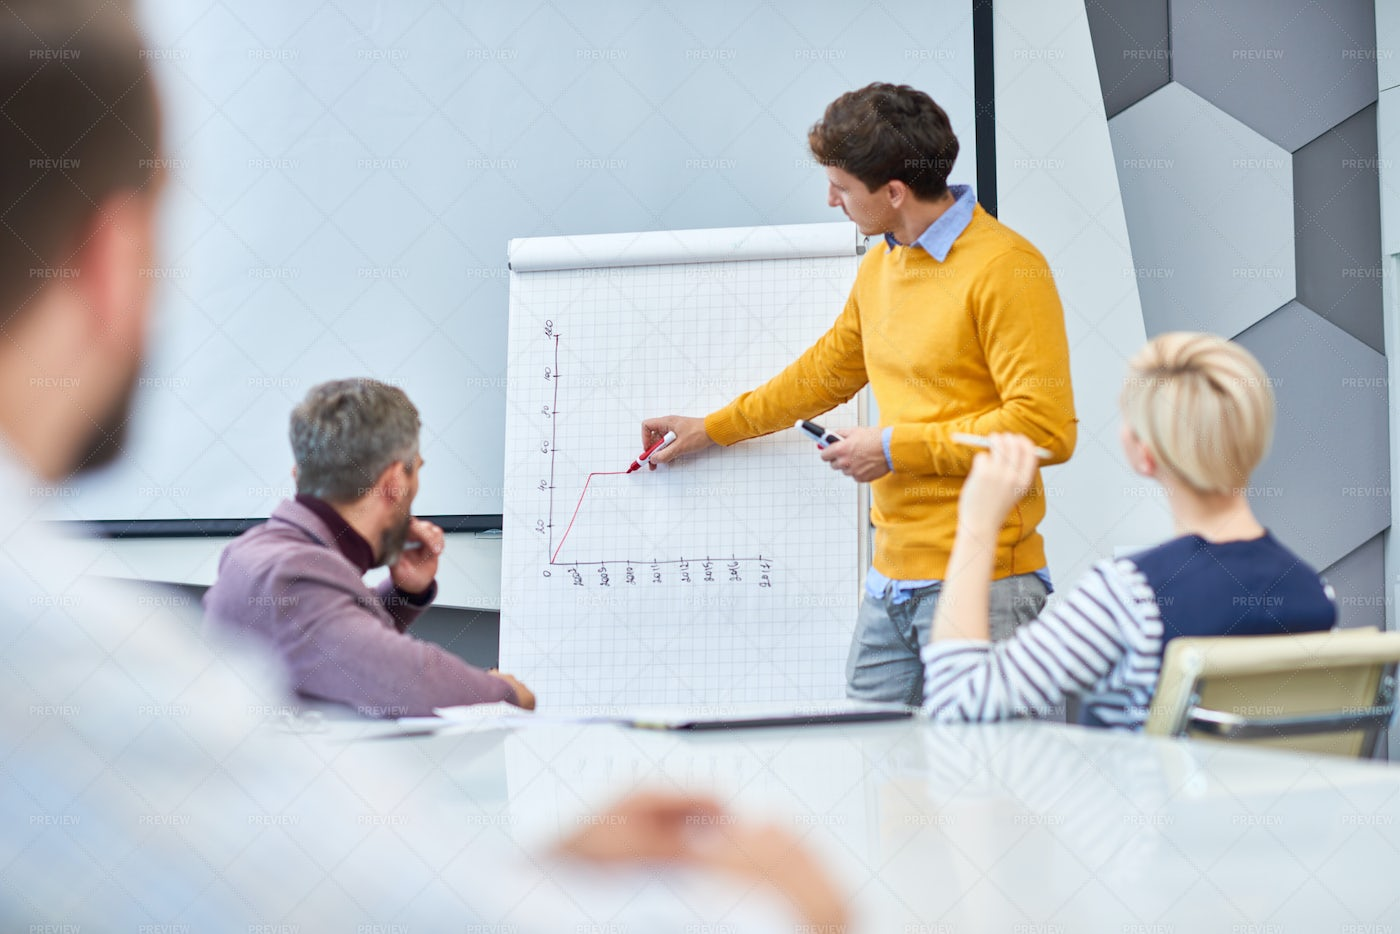 Marketing Meeting In Office: Stock Photos